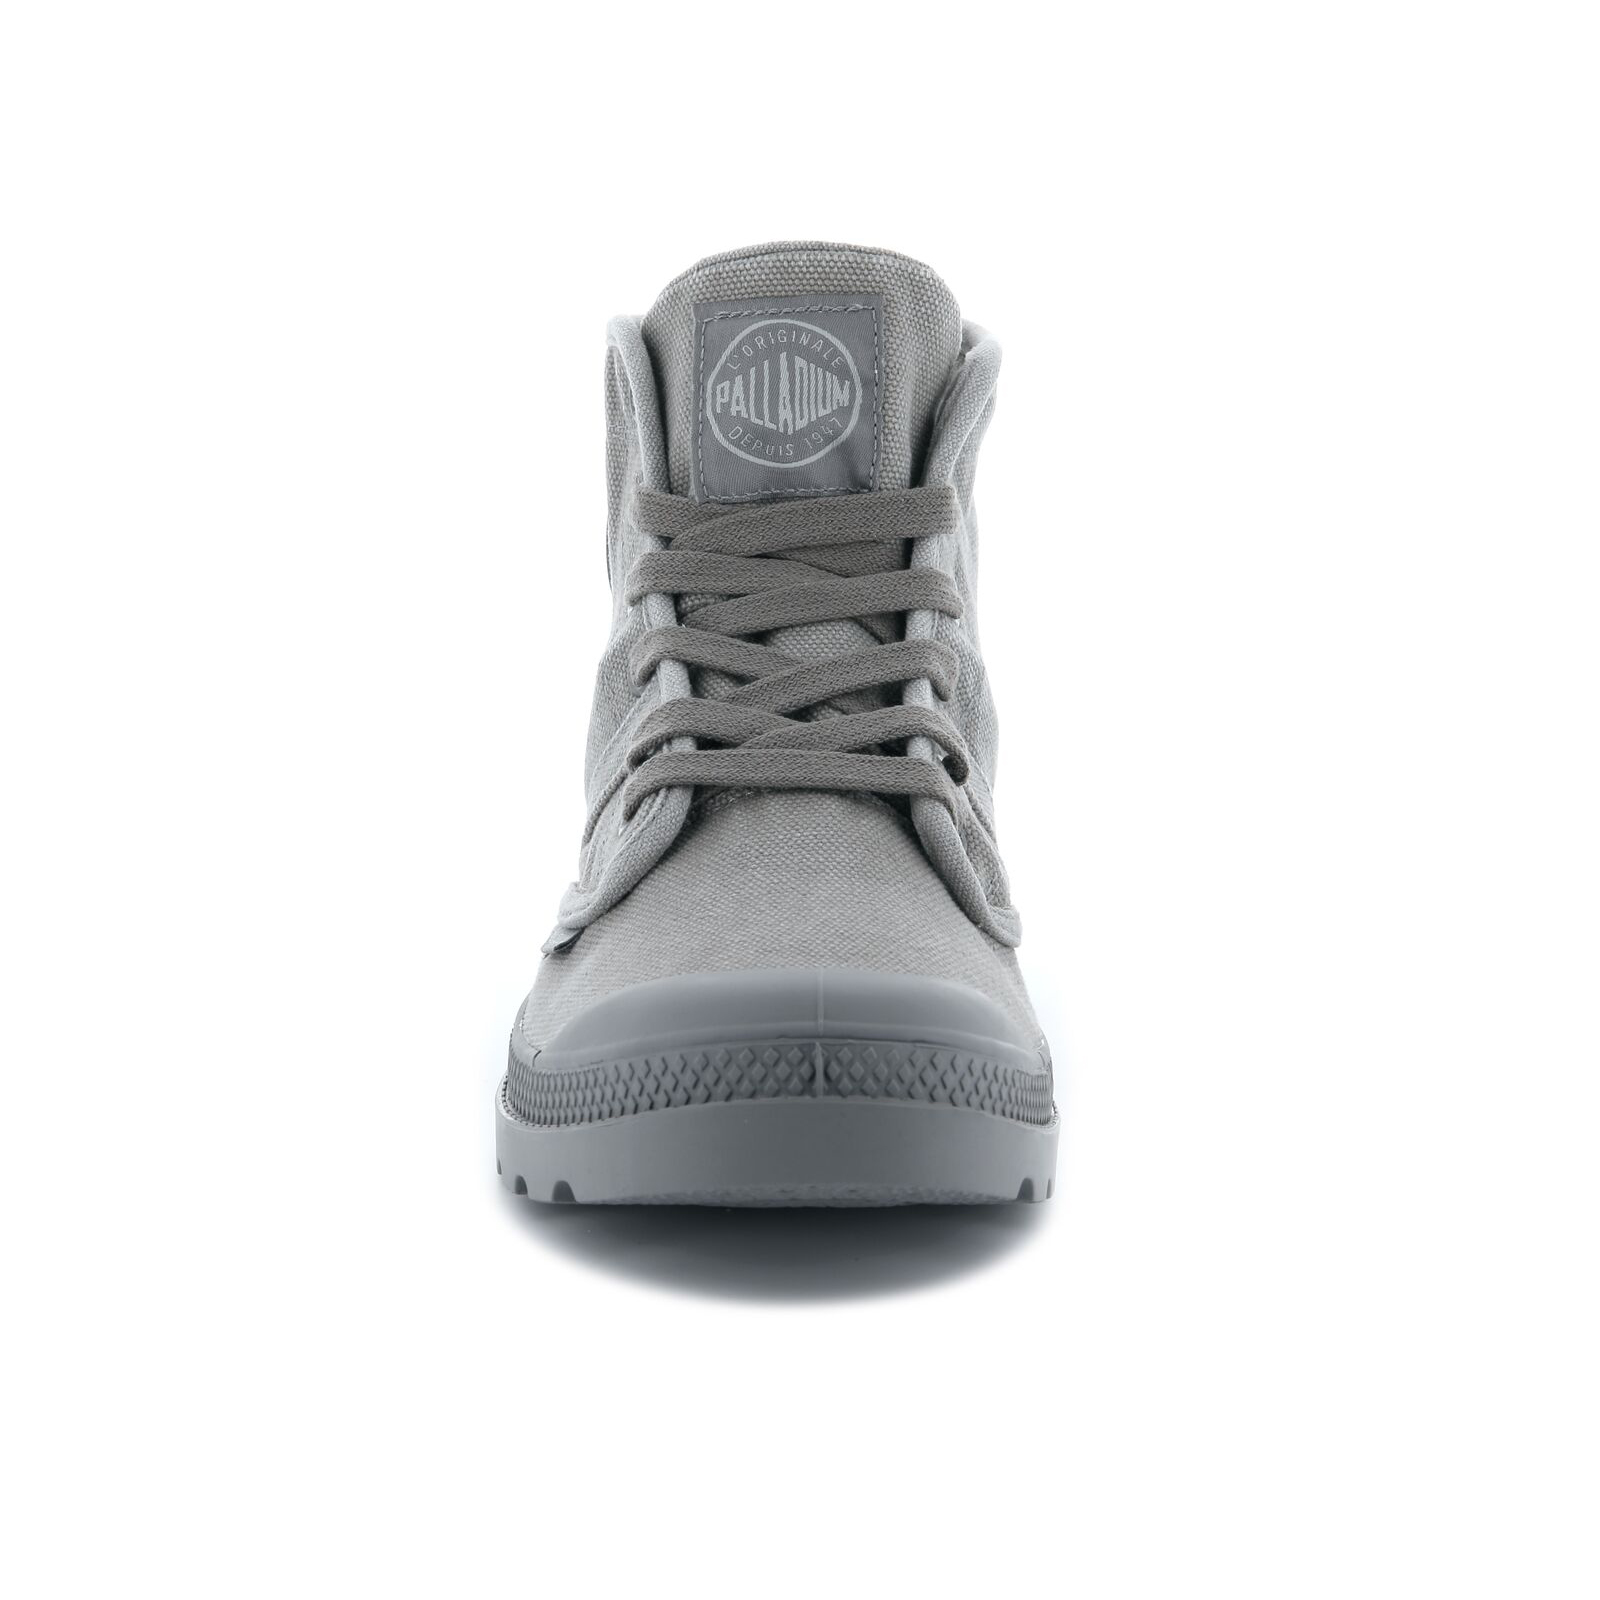 Palladium-Mens-Shoe-Pallabrouse-New-Designer-Walking-High-Top-Canvas-Ankle-Boots thumbnail 19